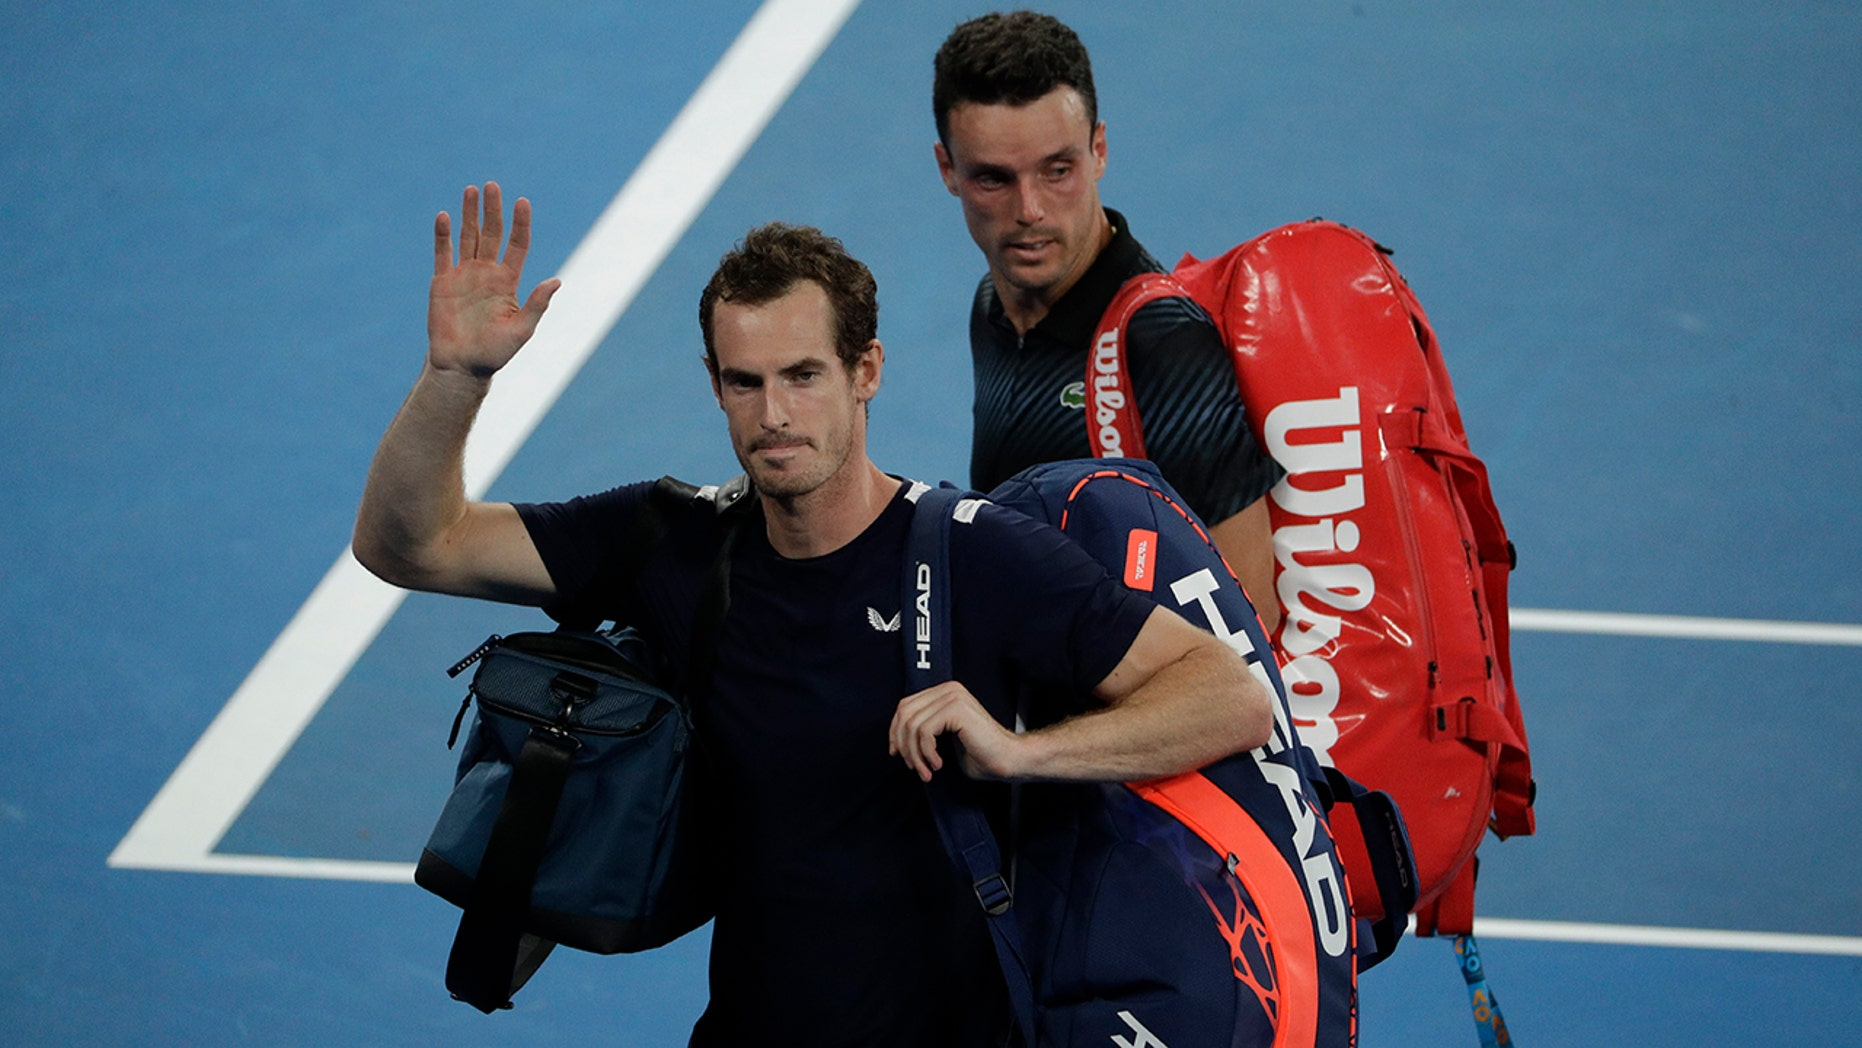 Britain's Andy Murray waves as he leaves the court following his first round loss to Spain's Roberto Bautista Agut at the Australian Open tennis championships in Melbourne, Australia, Monday, Jan. 14, 2019.